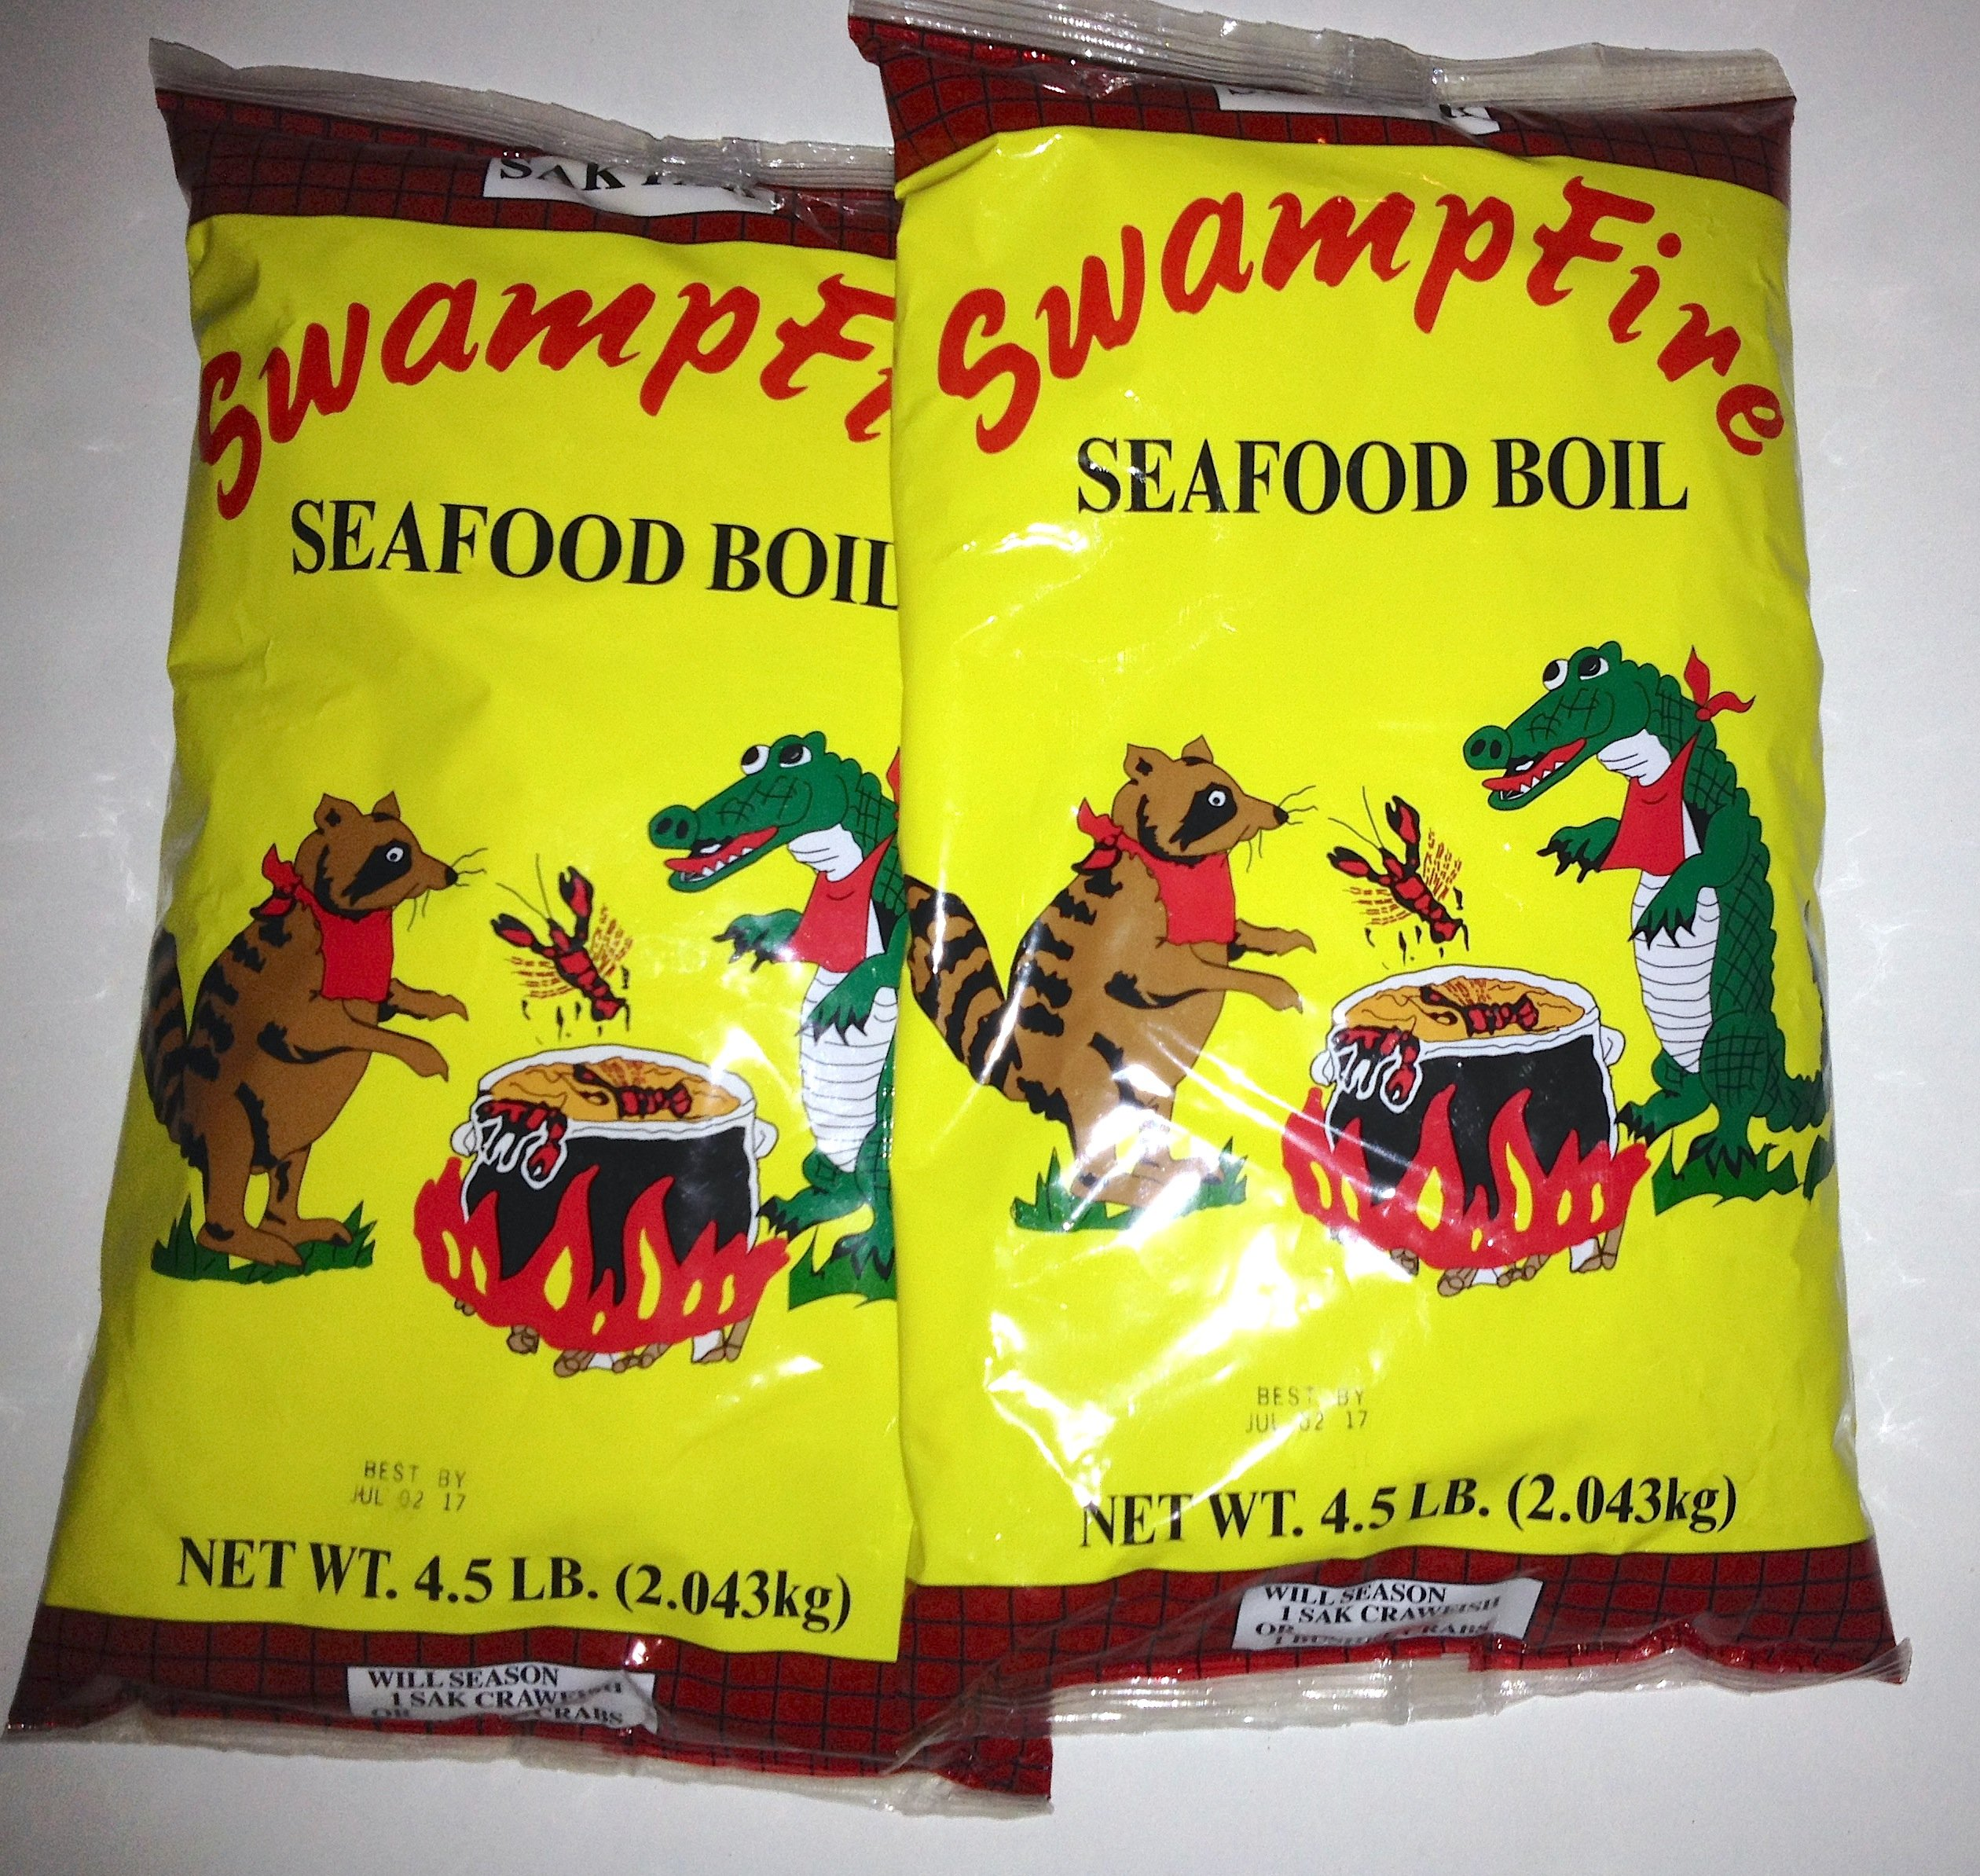 Swamp Fire Seafood Boil (Crawfish, Crab, Shrimp) 4.5# (2pk) by Swamp Fire (Image #1)